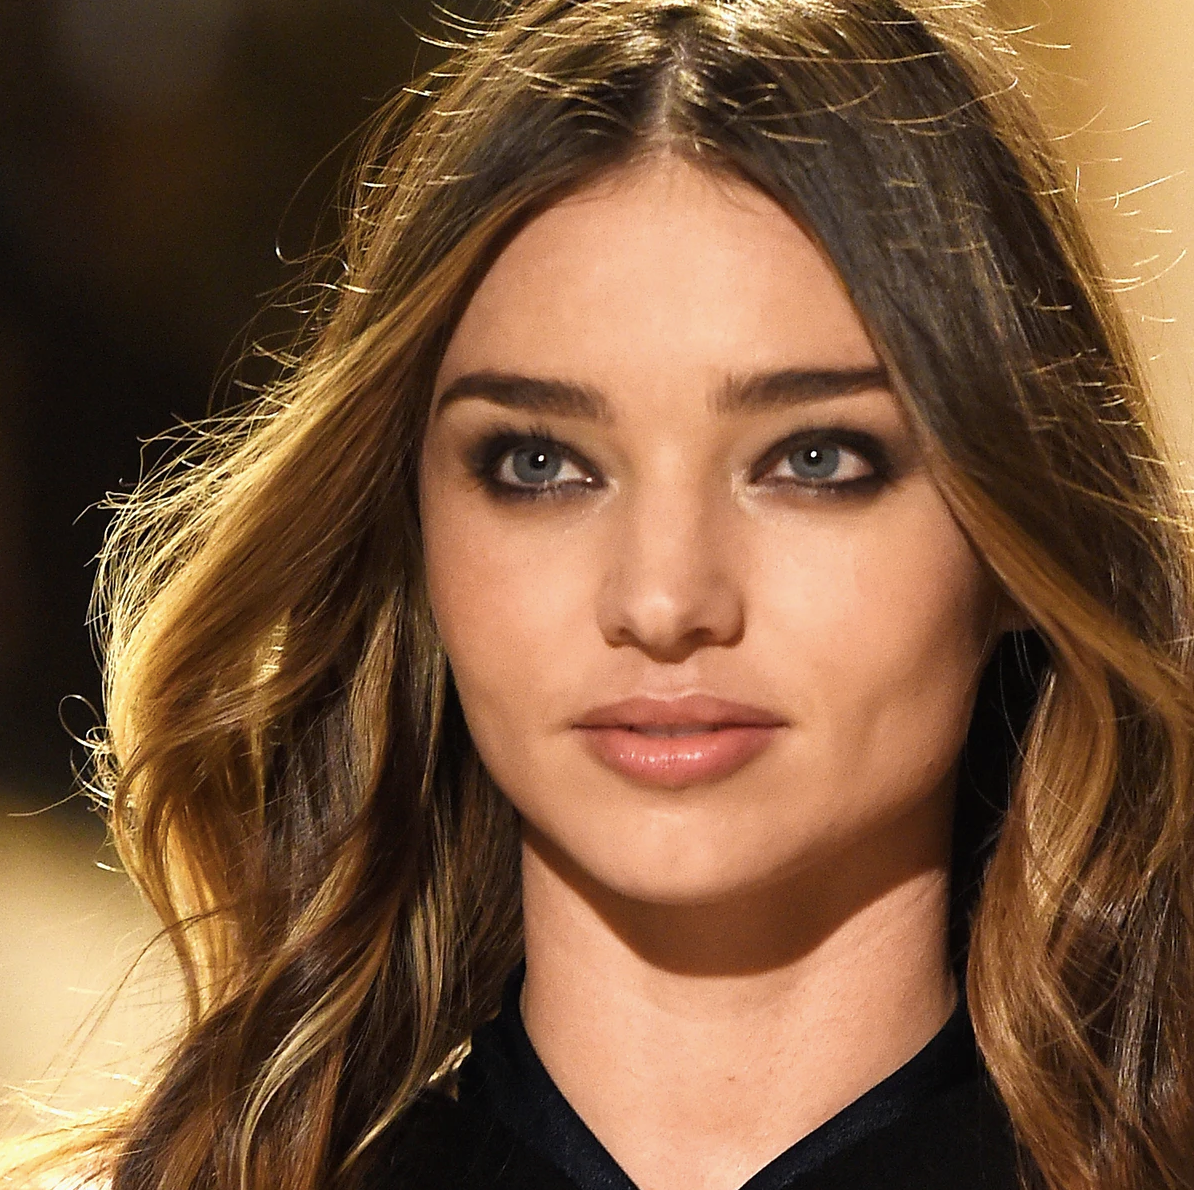 the zoe report - Miranda Kerr Launched KORA Organics In Response To 'Toxic' Fashion Week Beauty Products